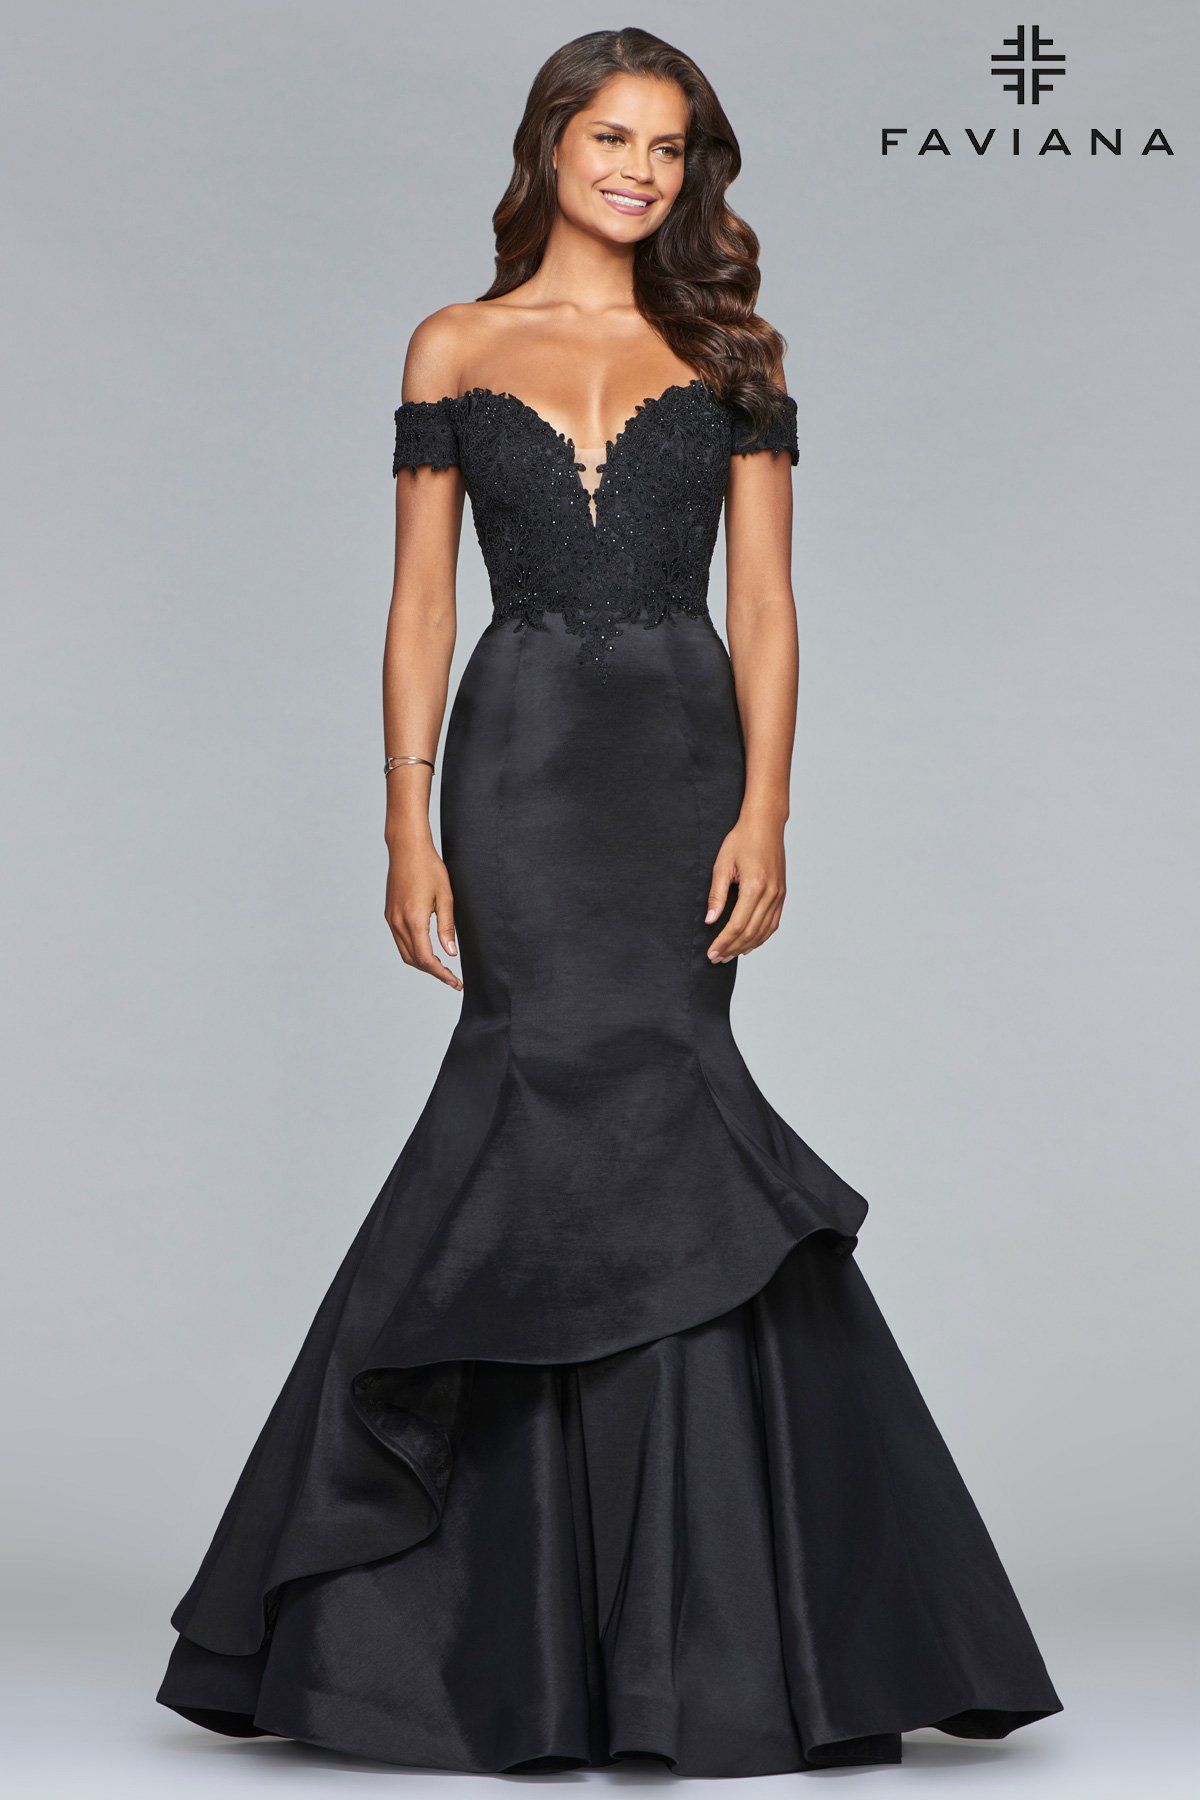 Faviana faviana spring pinterest prom couture and